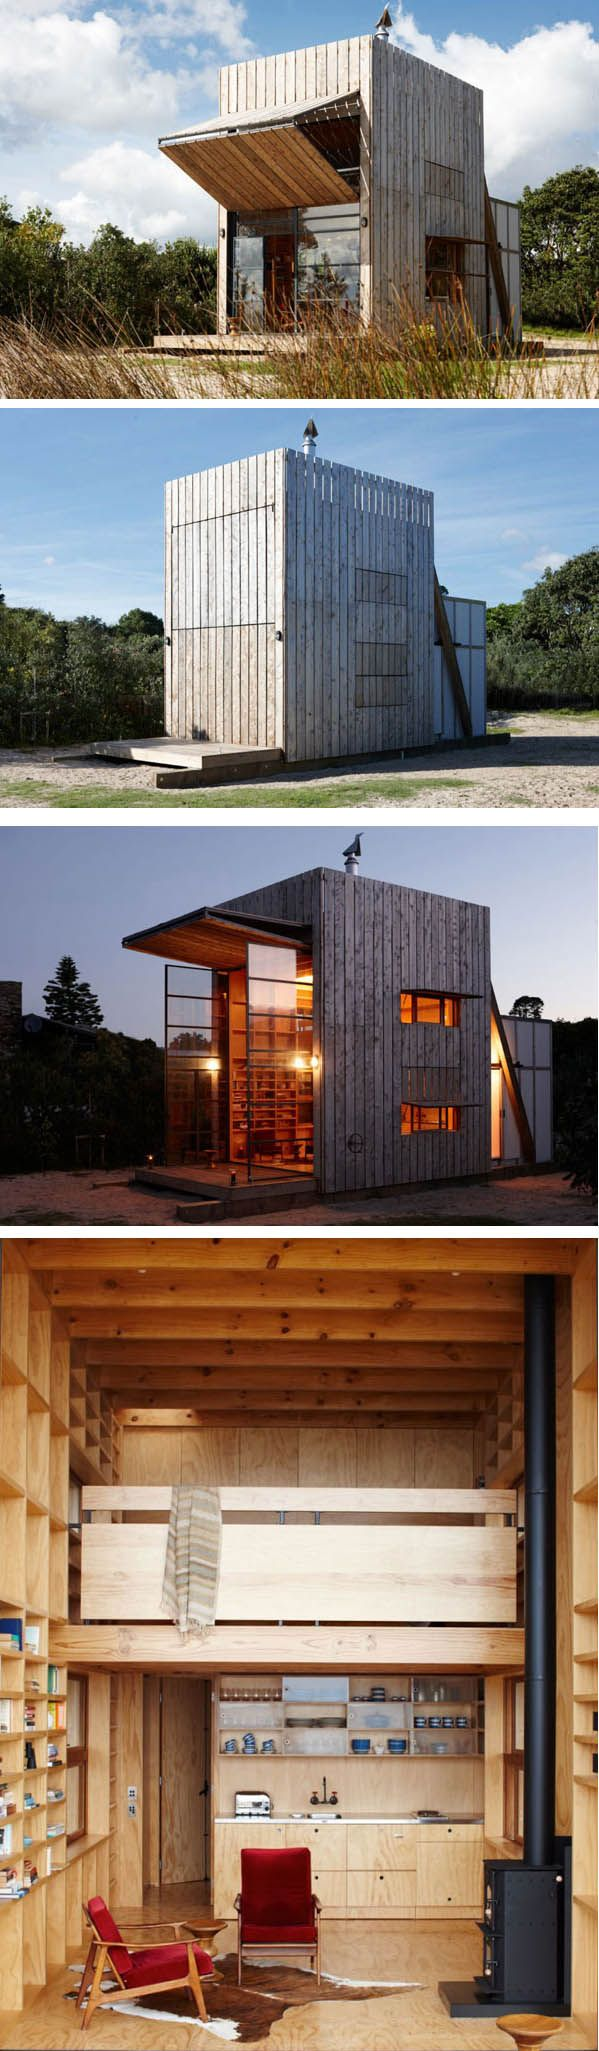 Operable, reactionary, timber, simple, pre-fab.